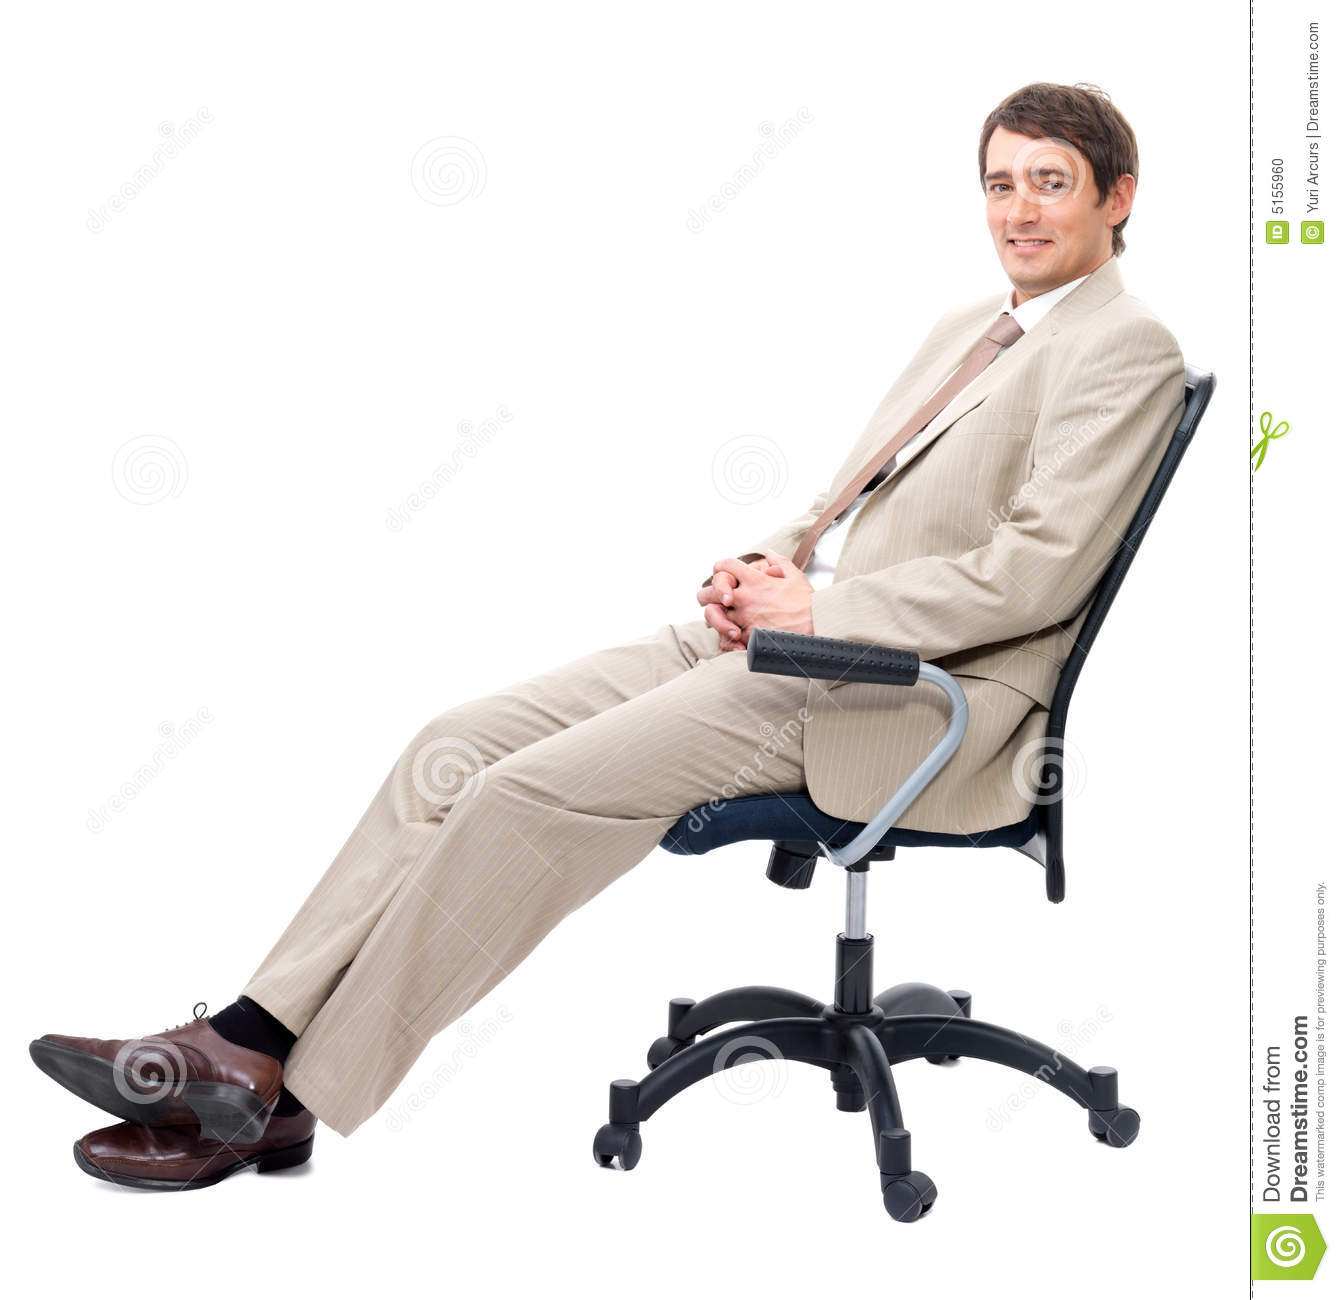 Stock photo business man sitting on chair image 5155960 for Sitting chairs